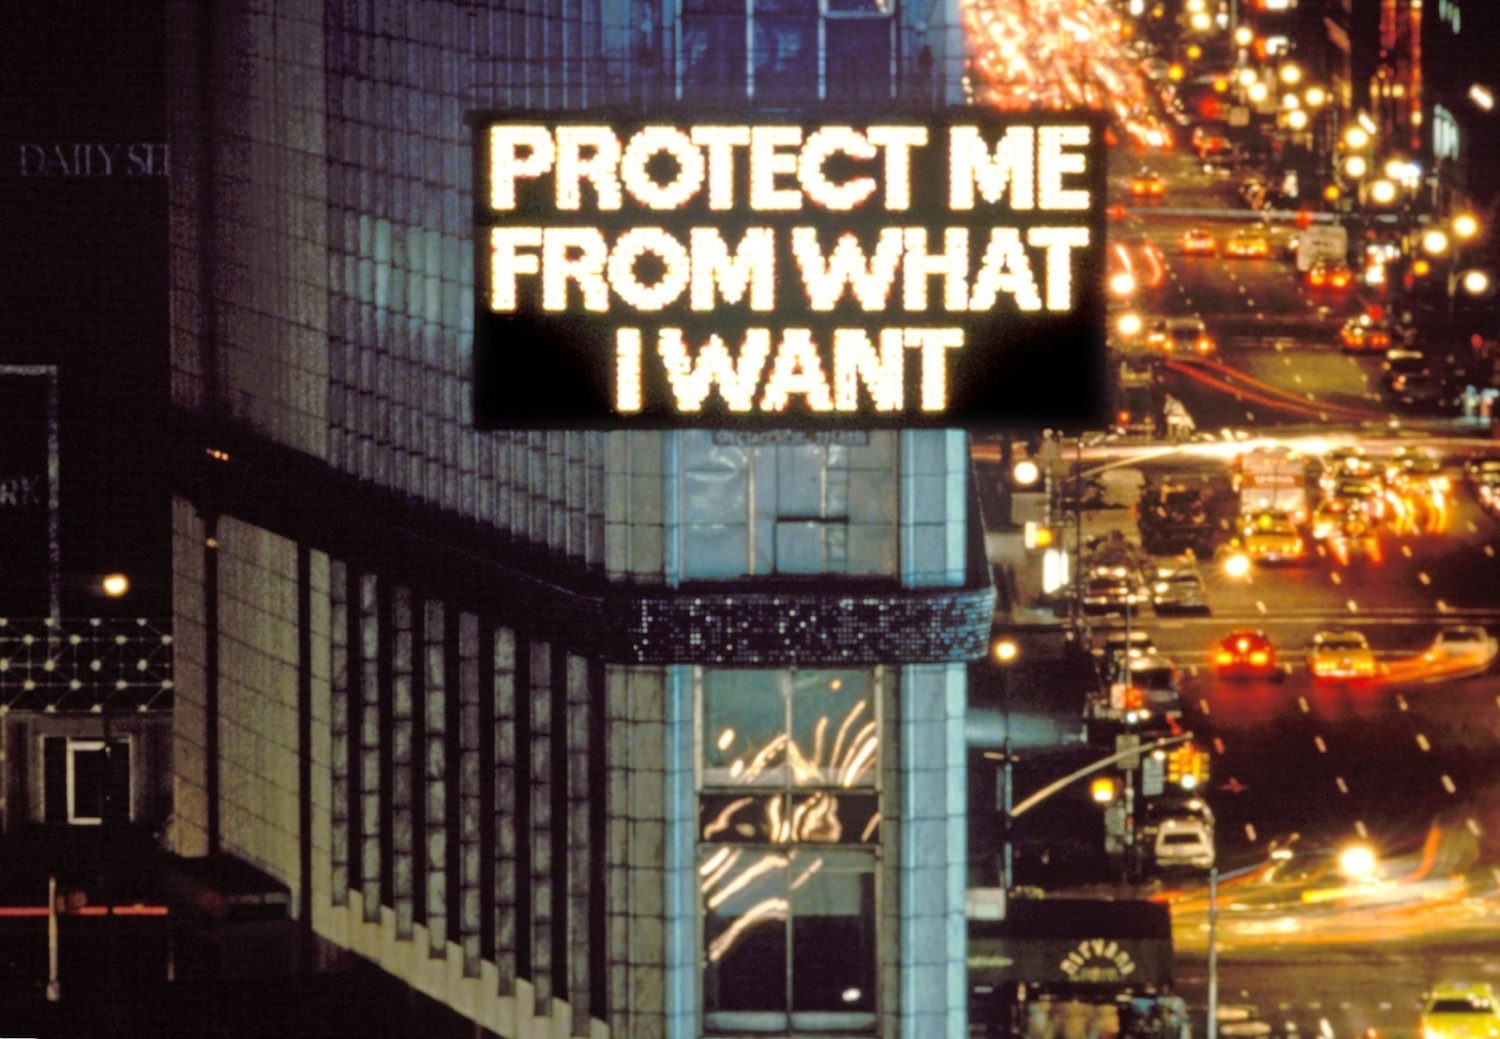 Jenny holzer protect me from what i want survival 1983 85 1985 aware women artists artistes femmes 1500x1039